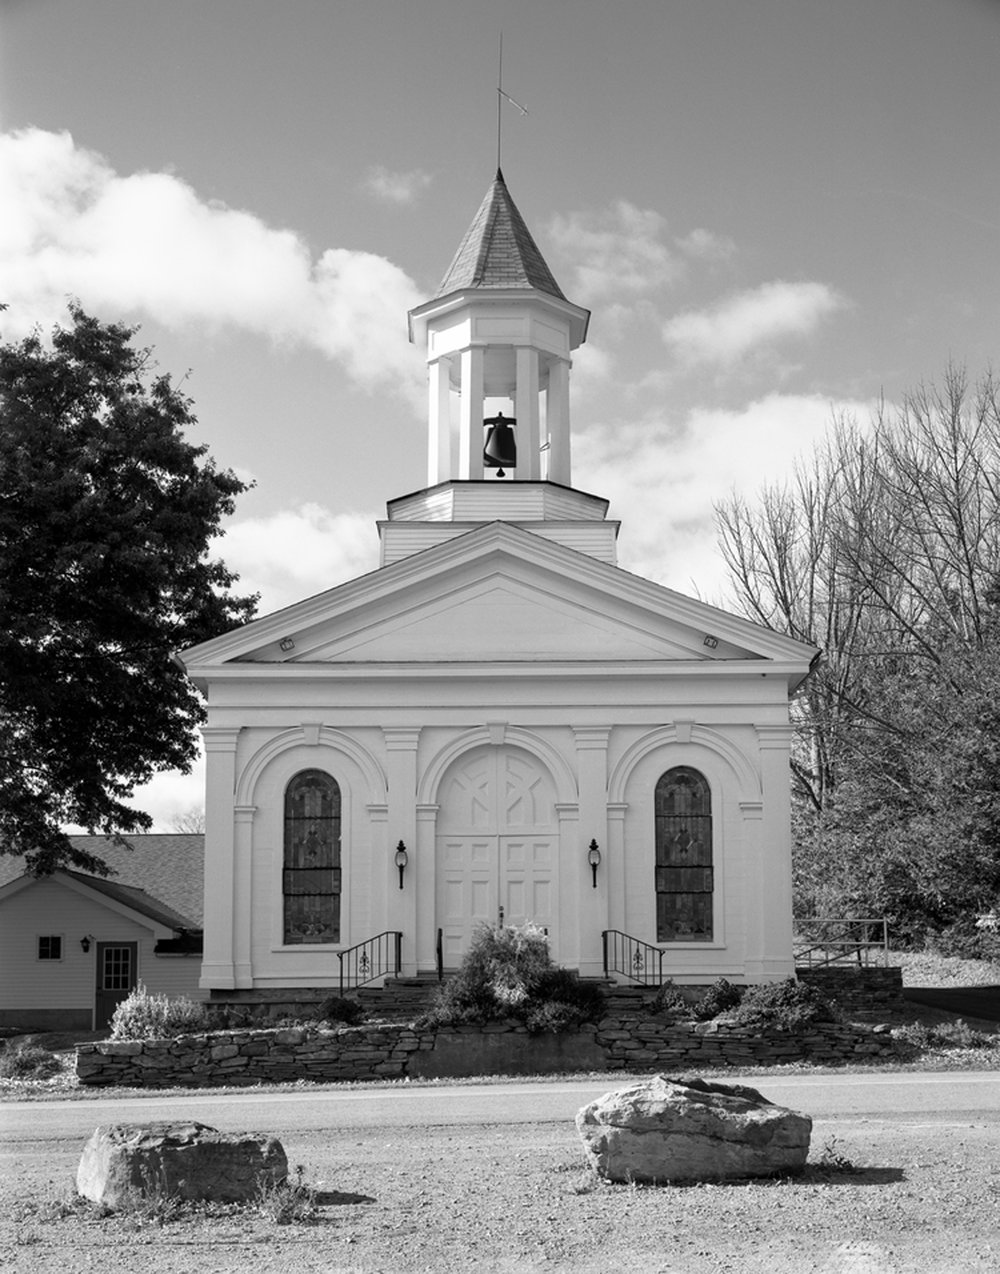 4x5_for_365_project_0281_calkins_baptist_church.jpg